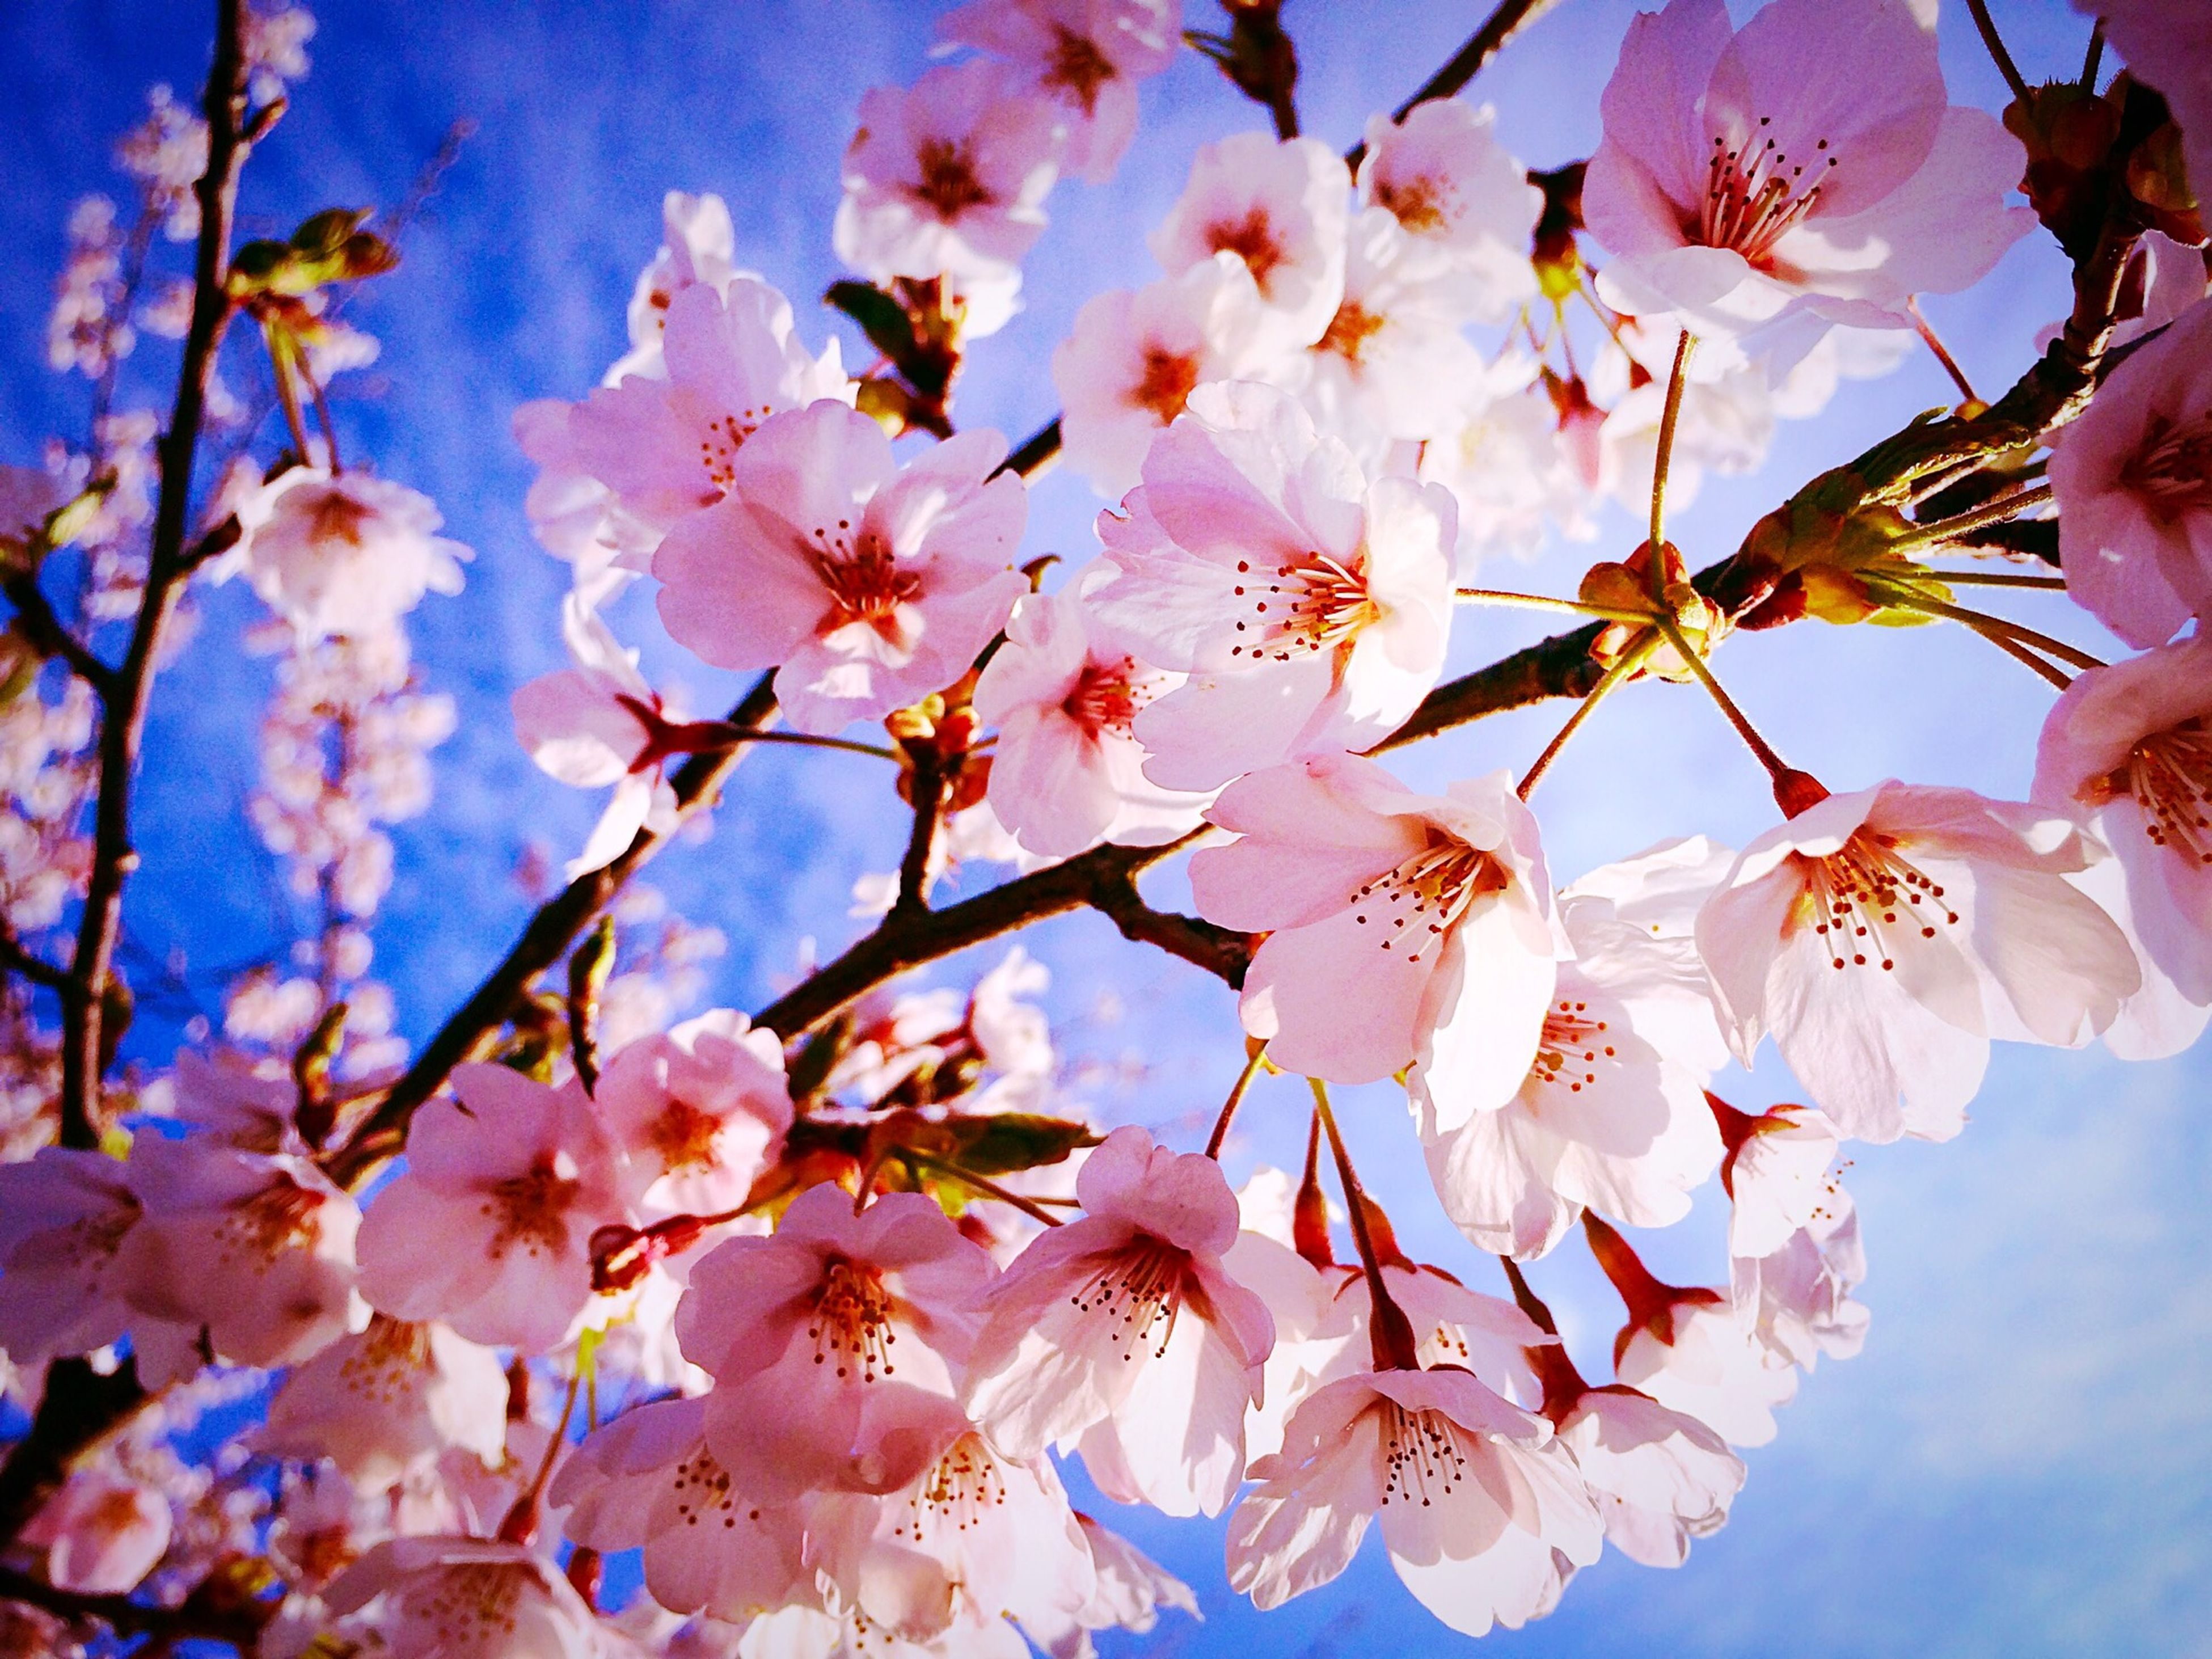 flower, branch, freshness, low angle view, tree, growth, beauty in nature, fragility, blossom, cherry blossom, nature, petal, sky, cherry tree, springtime, in bloom, pink color, blooming, twig, blue